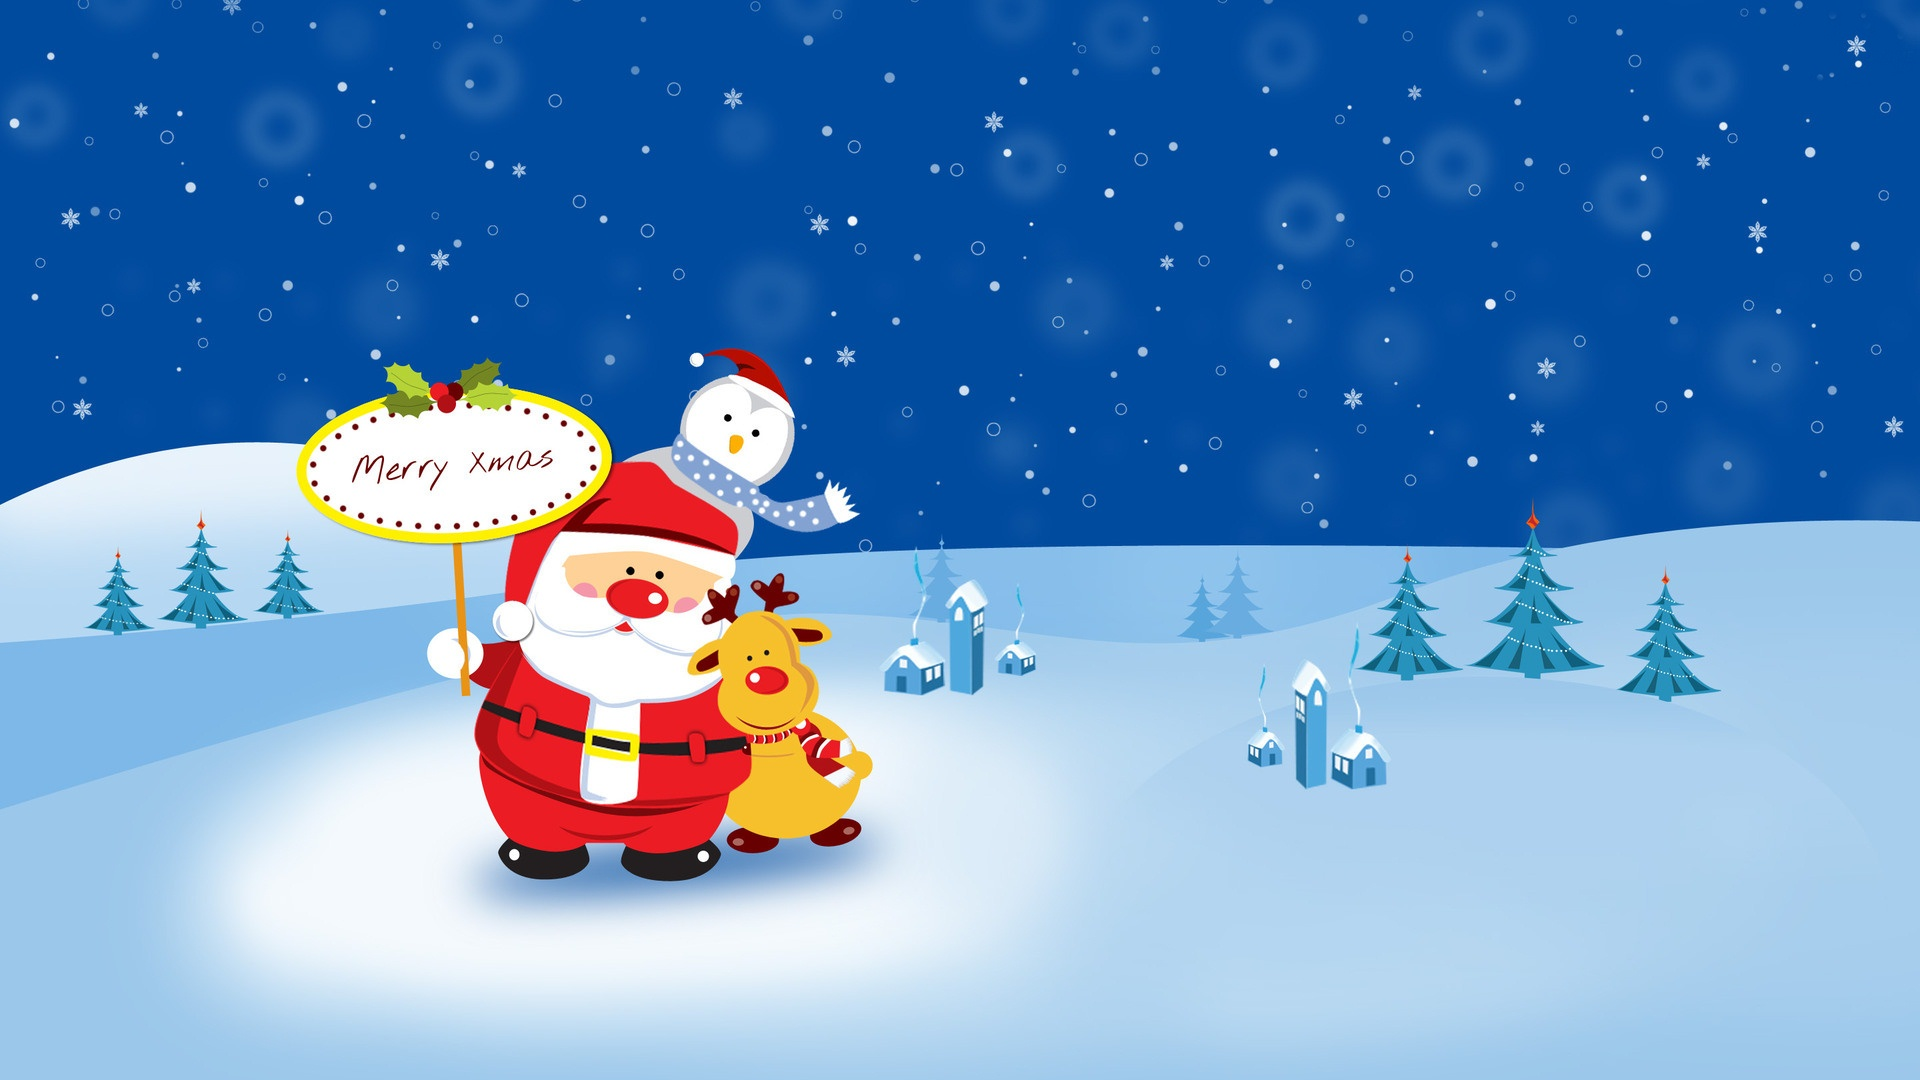 Hdwallpaperhd Wallpaper Happy Christmas Cartoon Pic Phone 1920x1080